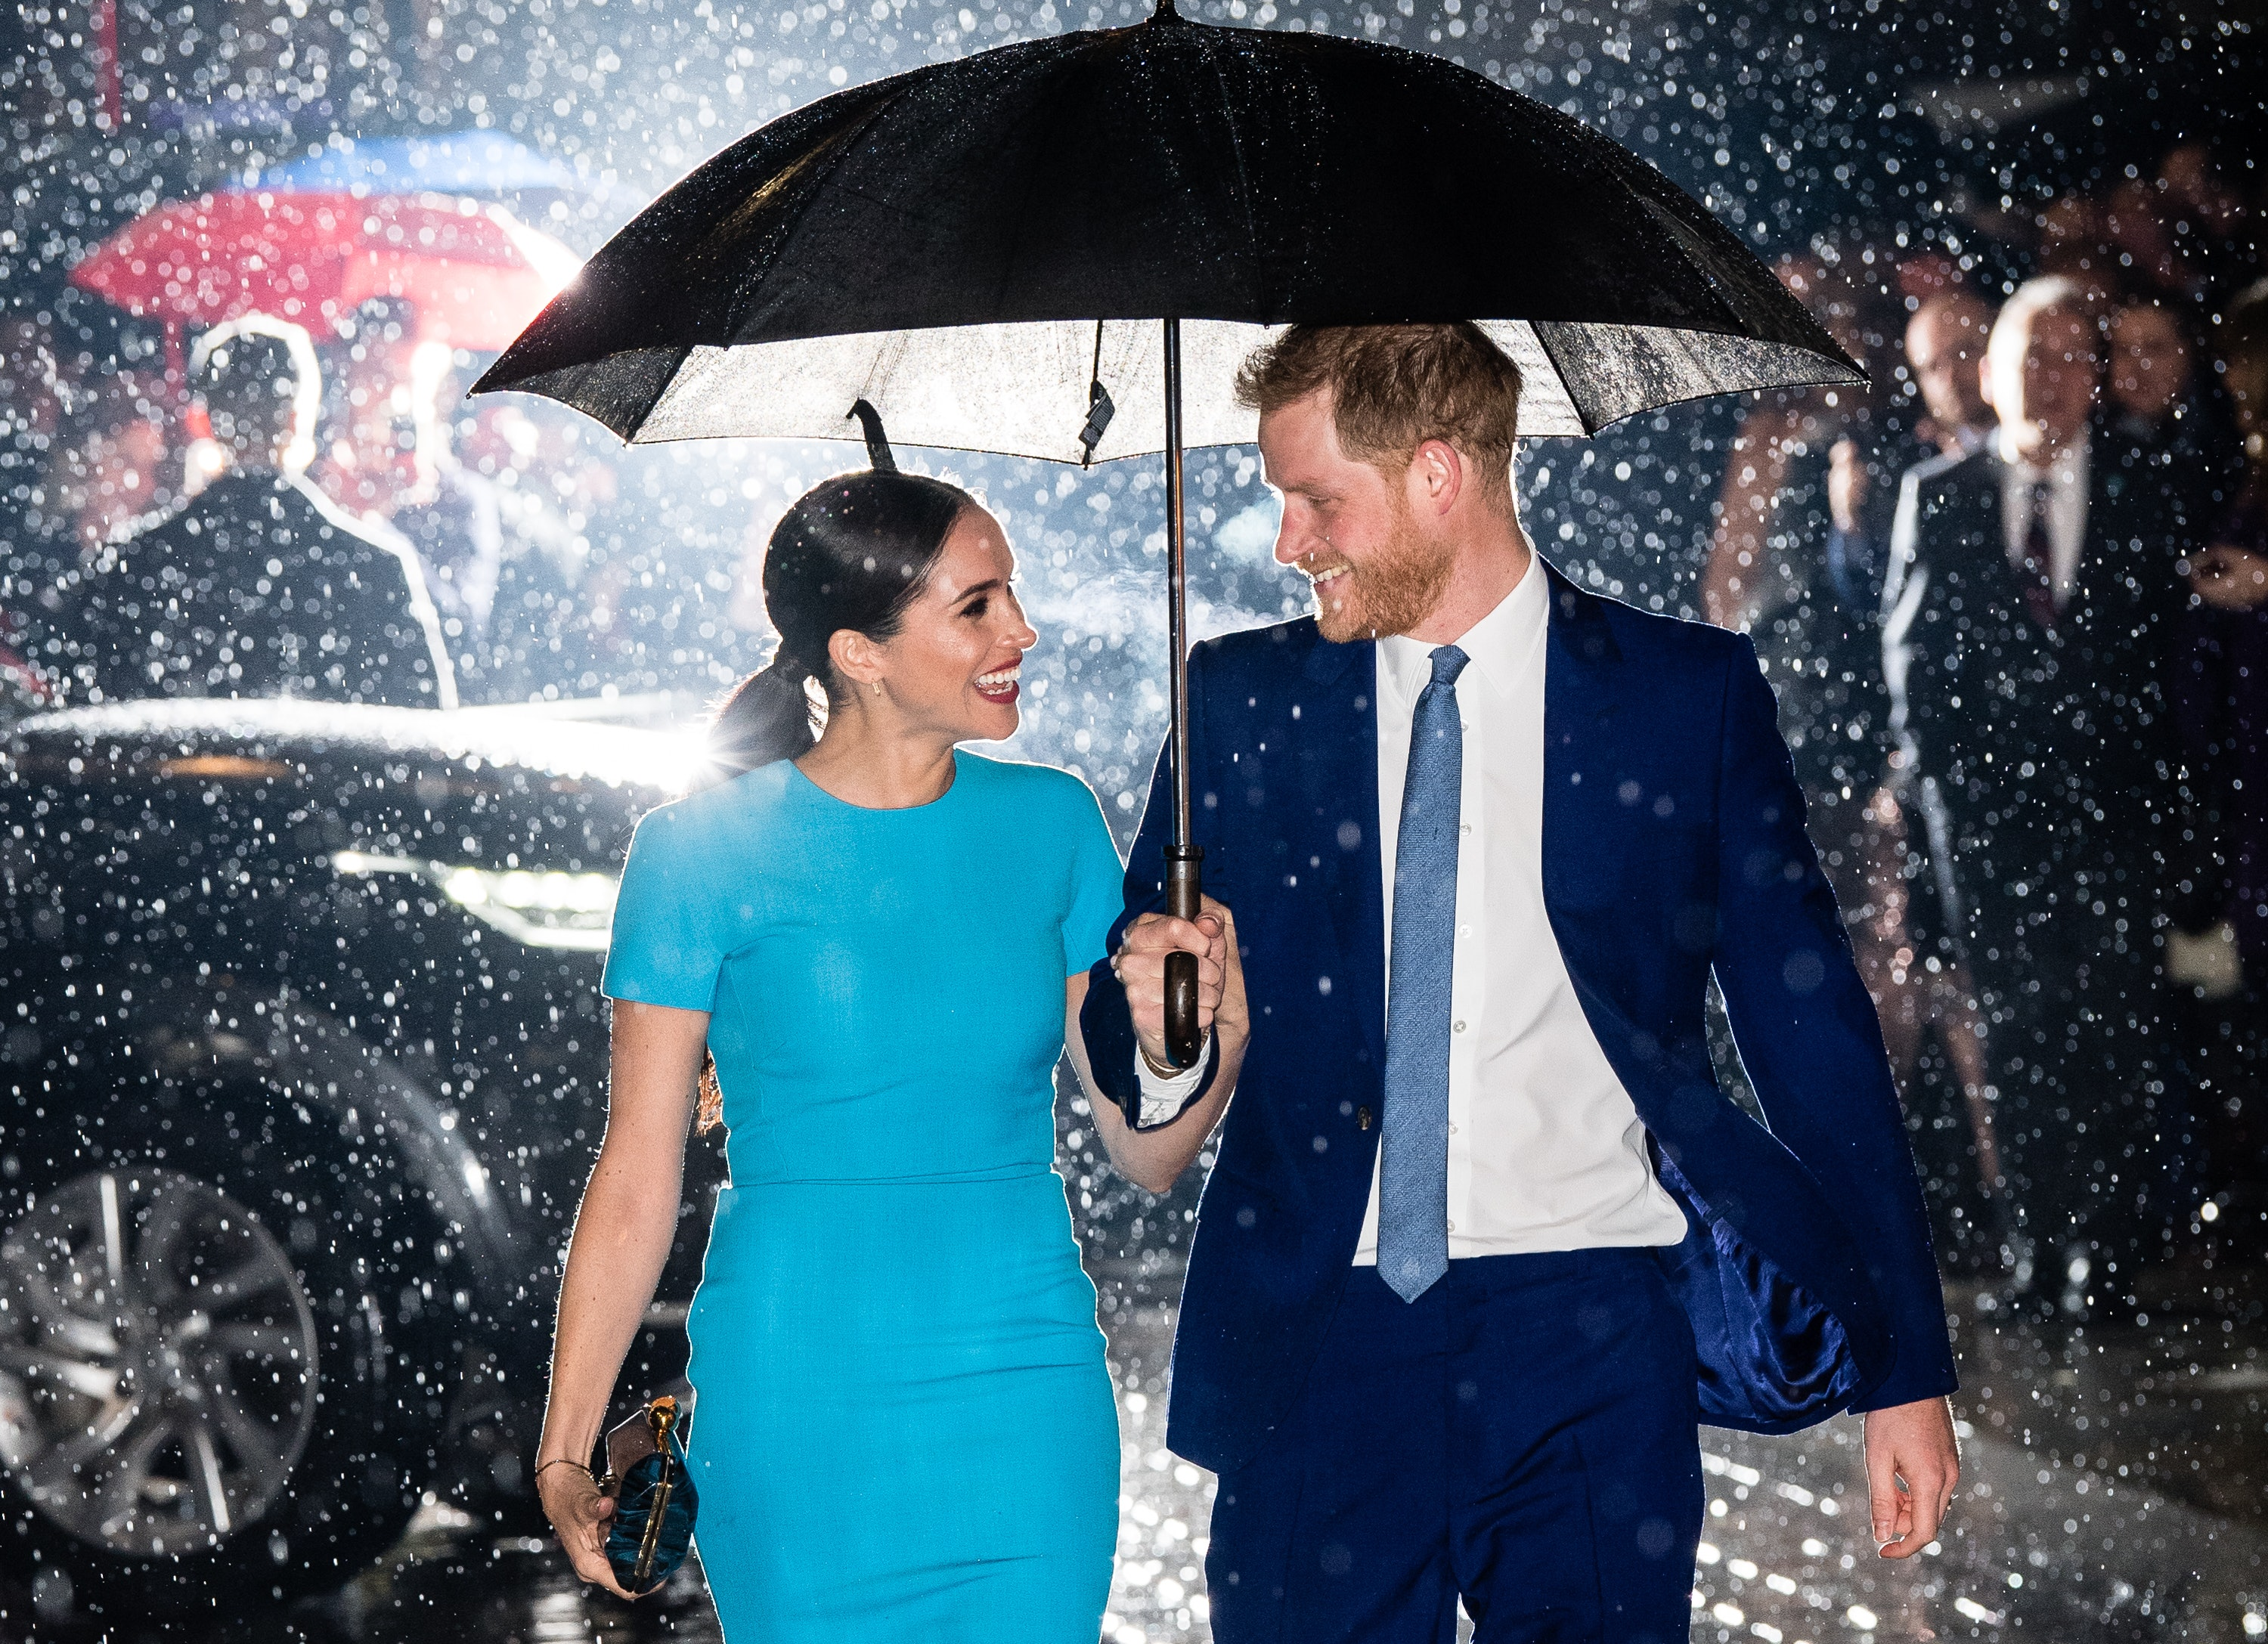 These Details About Meghan Markle & Prince Harry's Relationship ...